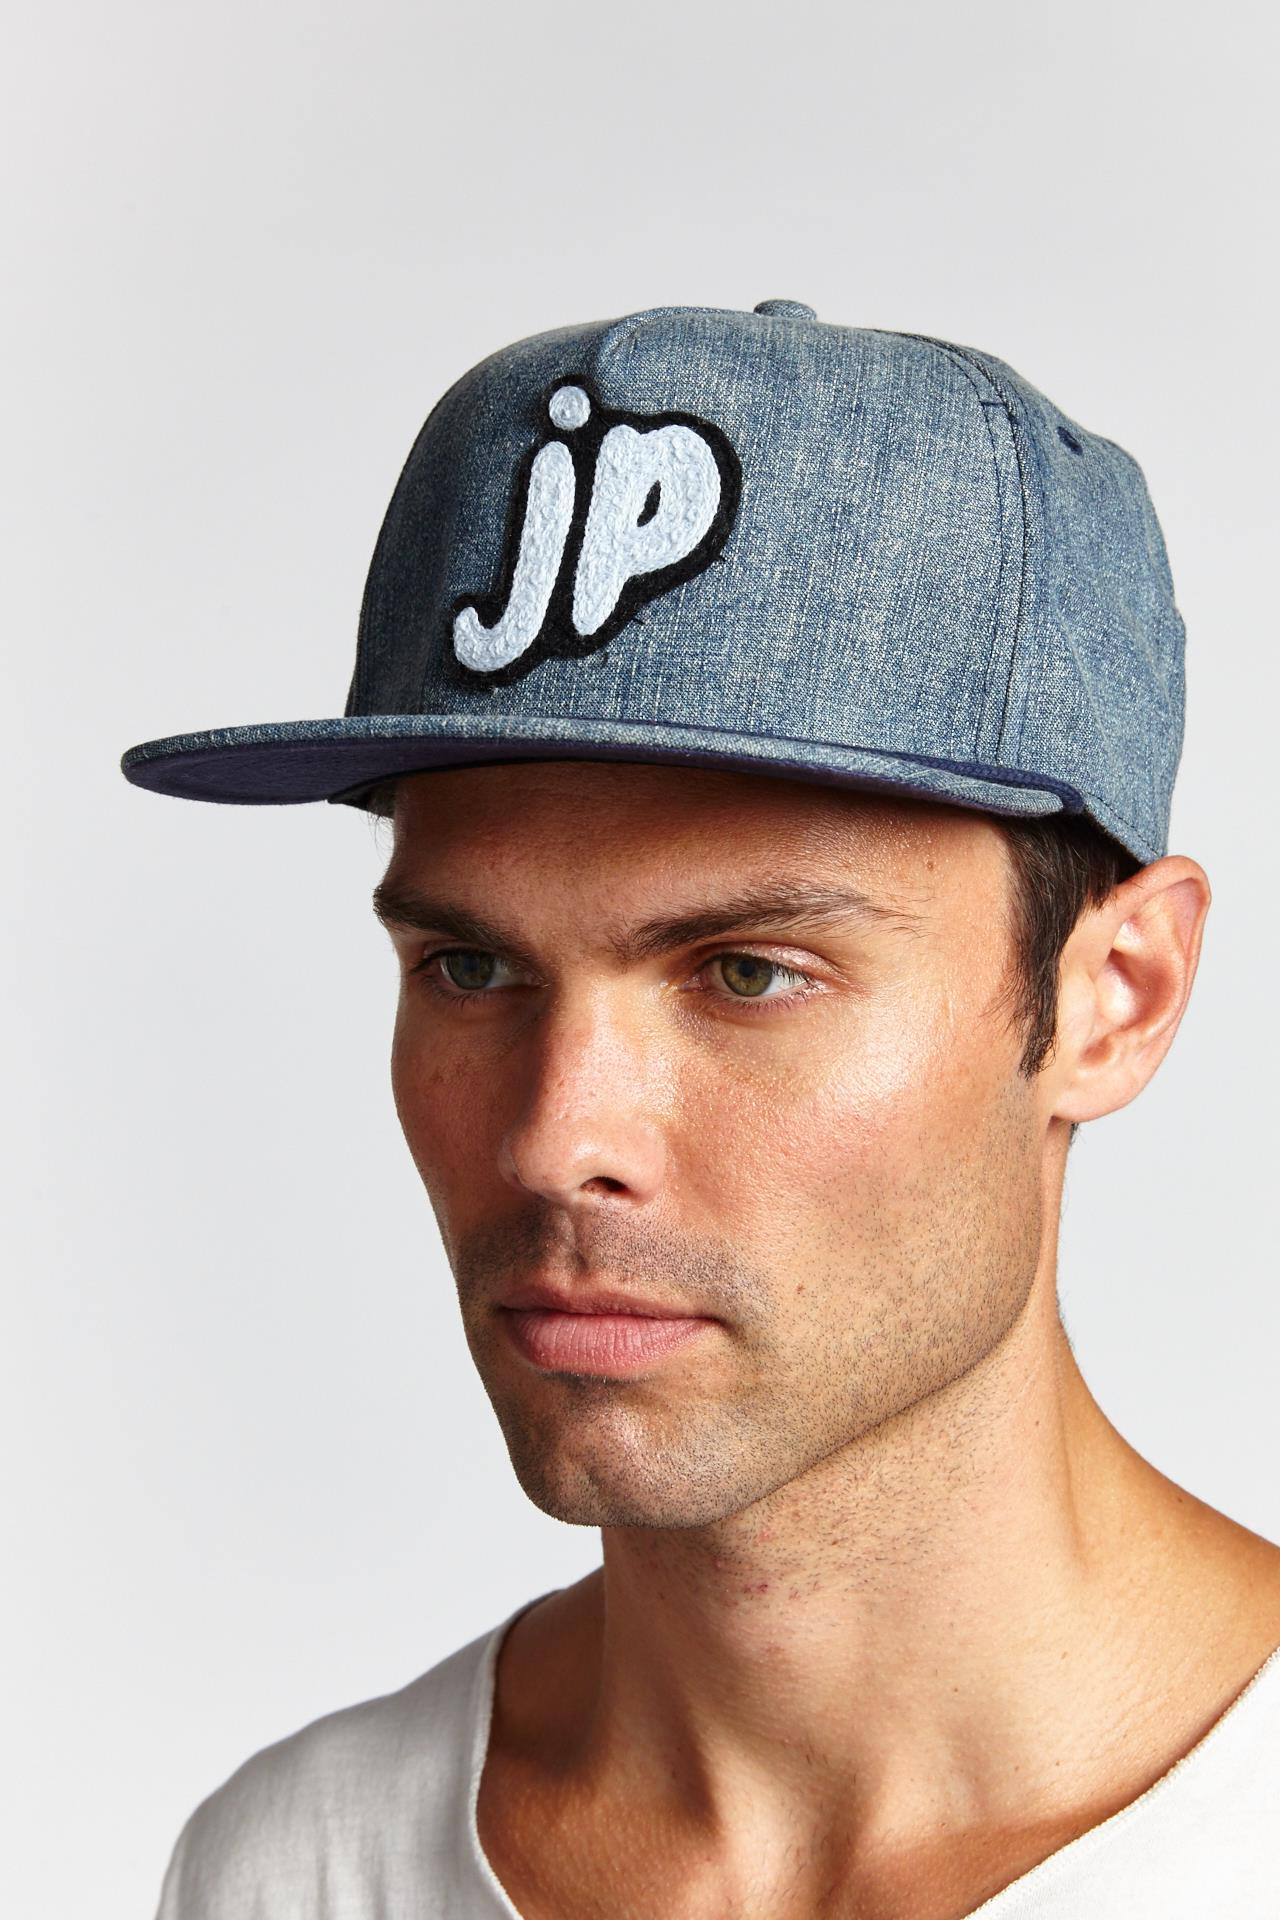 JP CUSTOM LOGO BLUE HAT-ACCESSORIES-Mundane Official-blue-Mundane Official